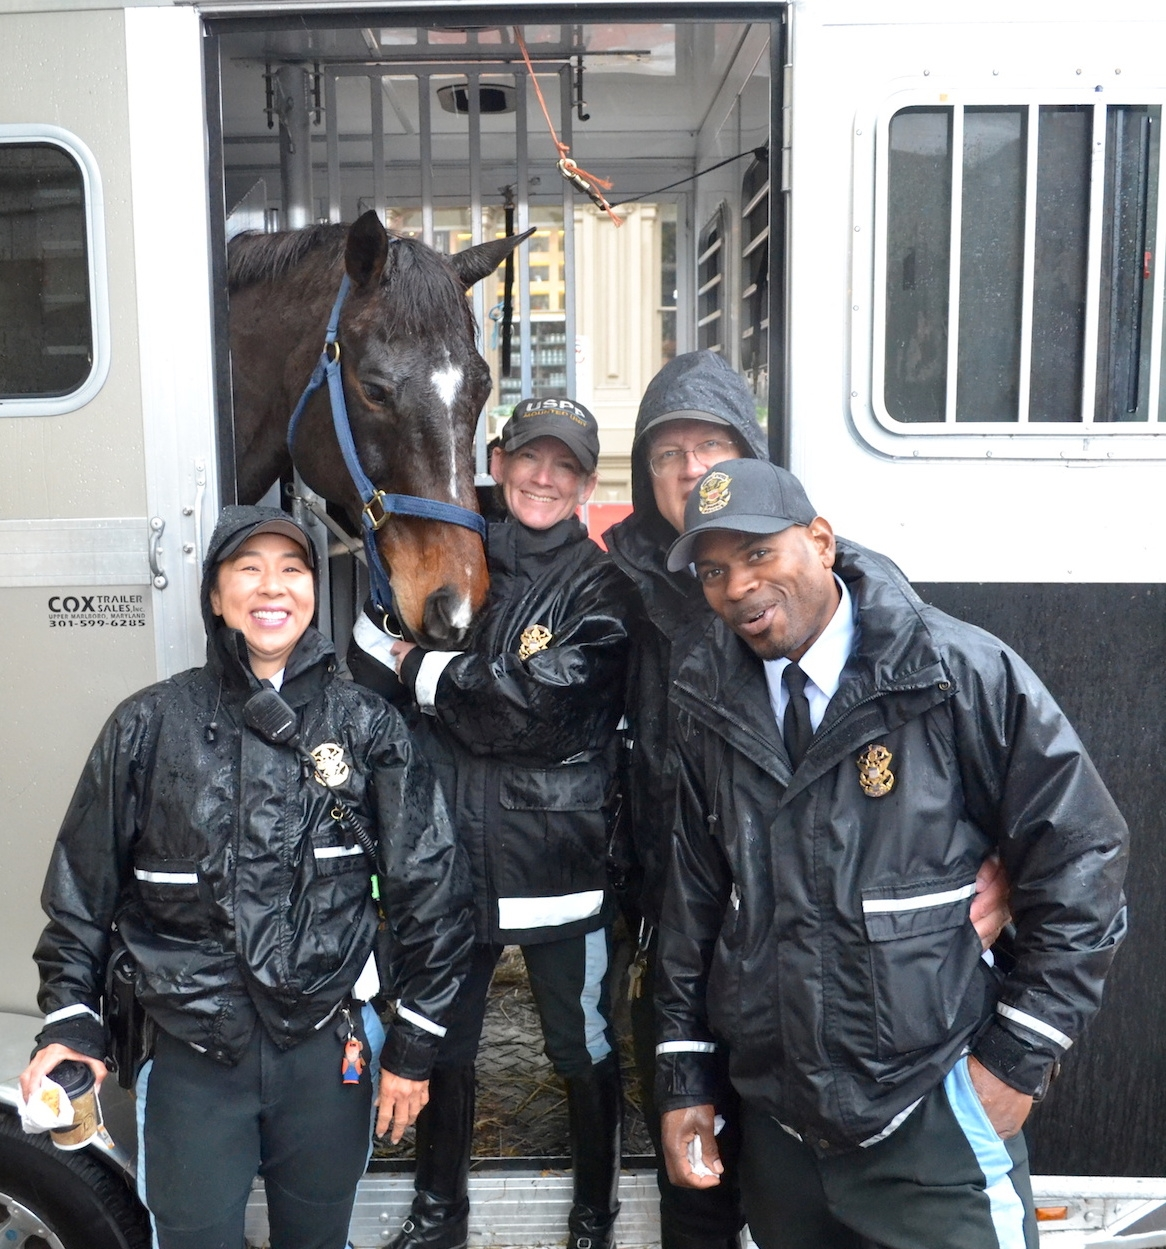 The annual WIHS Breakfast with the Mounted Police and their horses. <br><b>Photo by <a href='http://www.jumpmediallc.com/'>Jump Media</a></b>